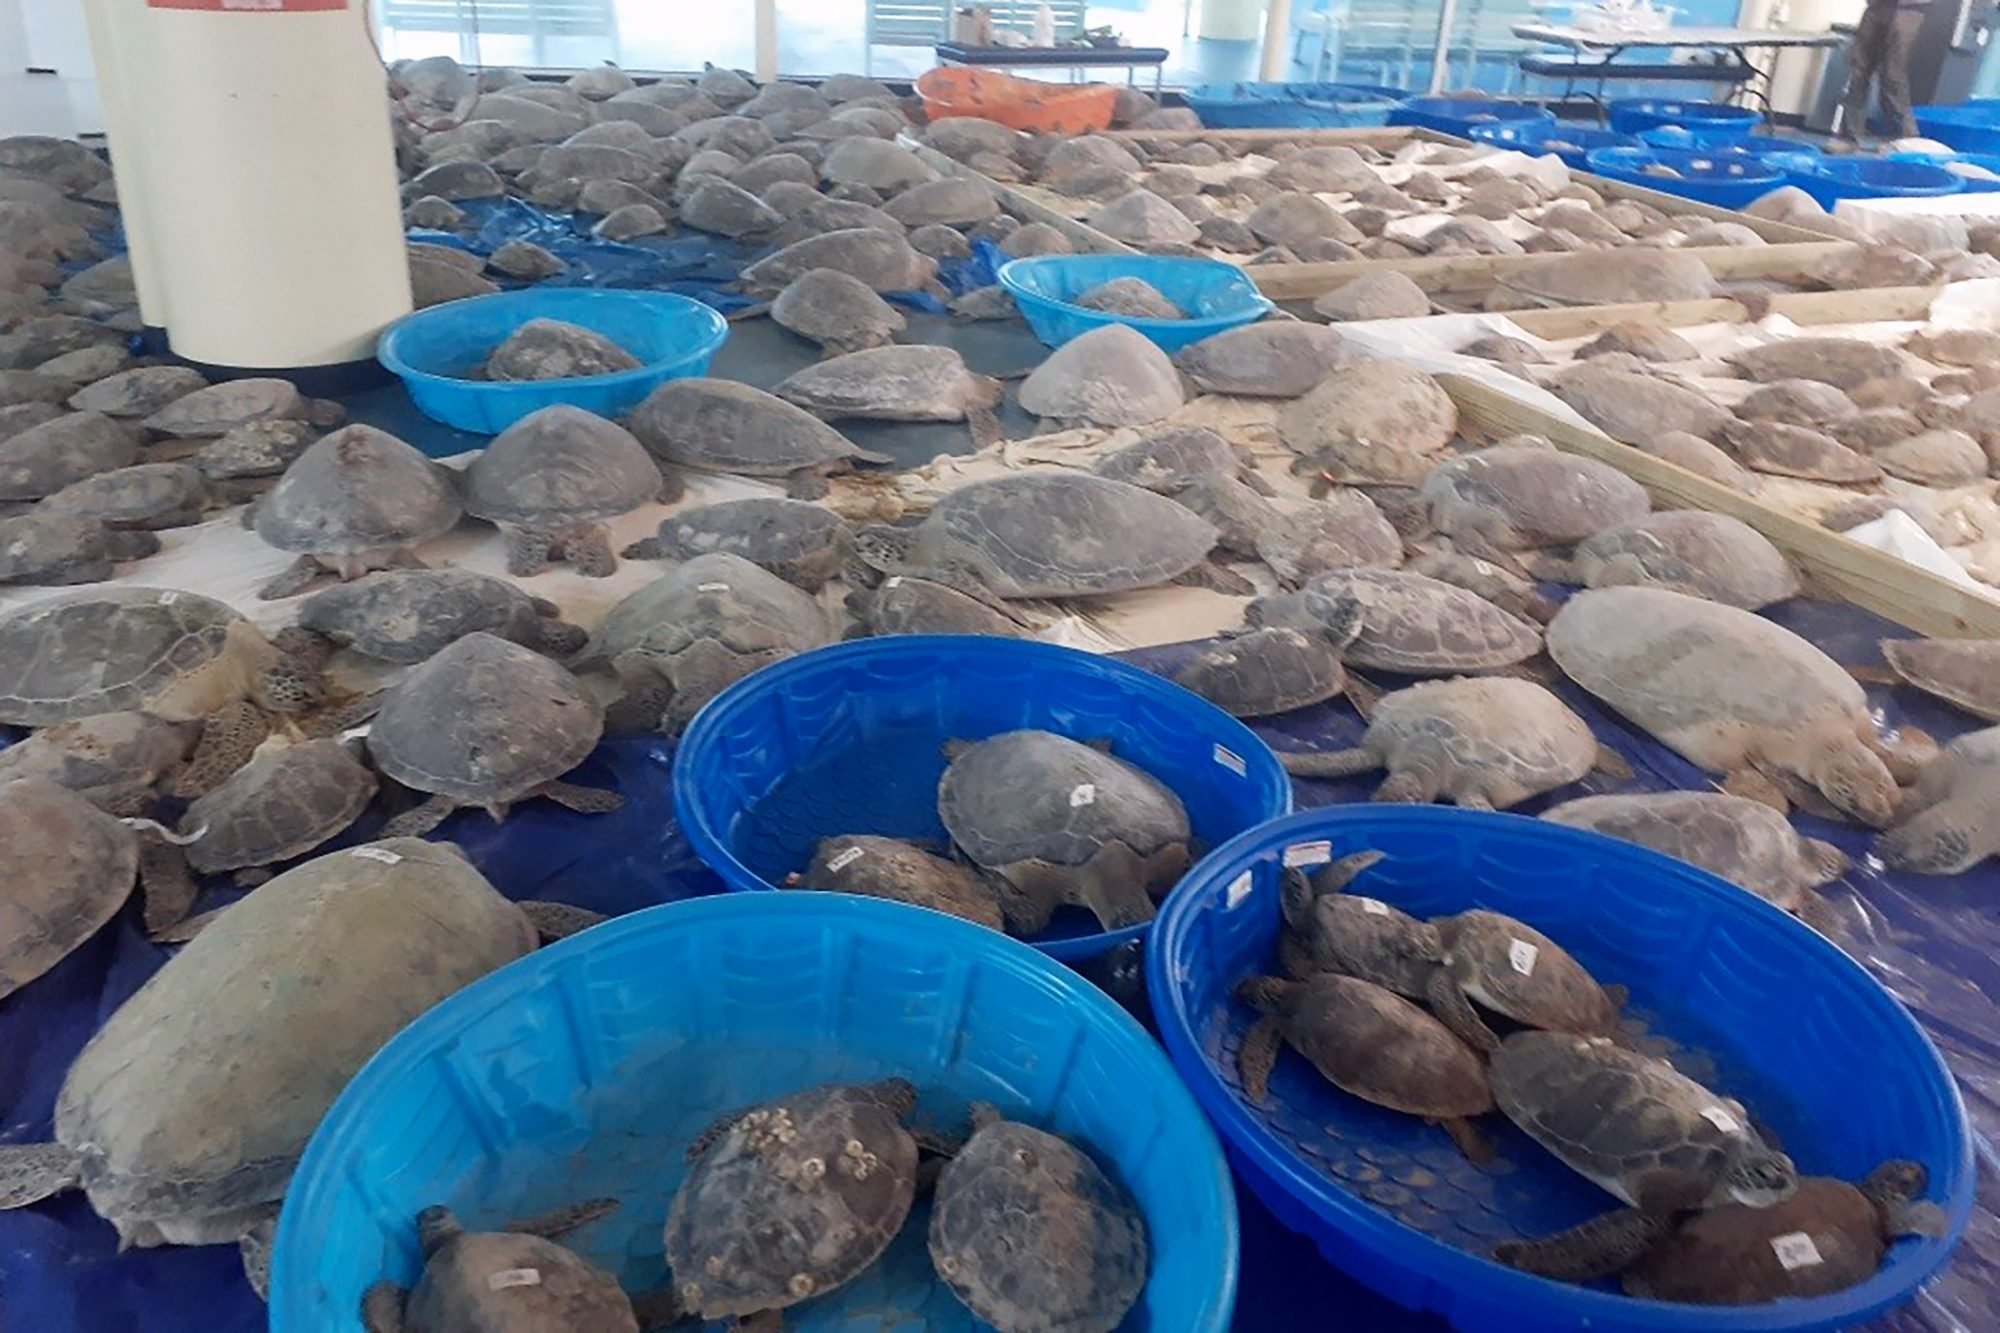 room full of thousands of saved turtles